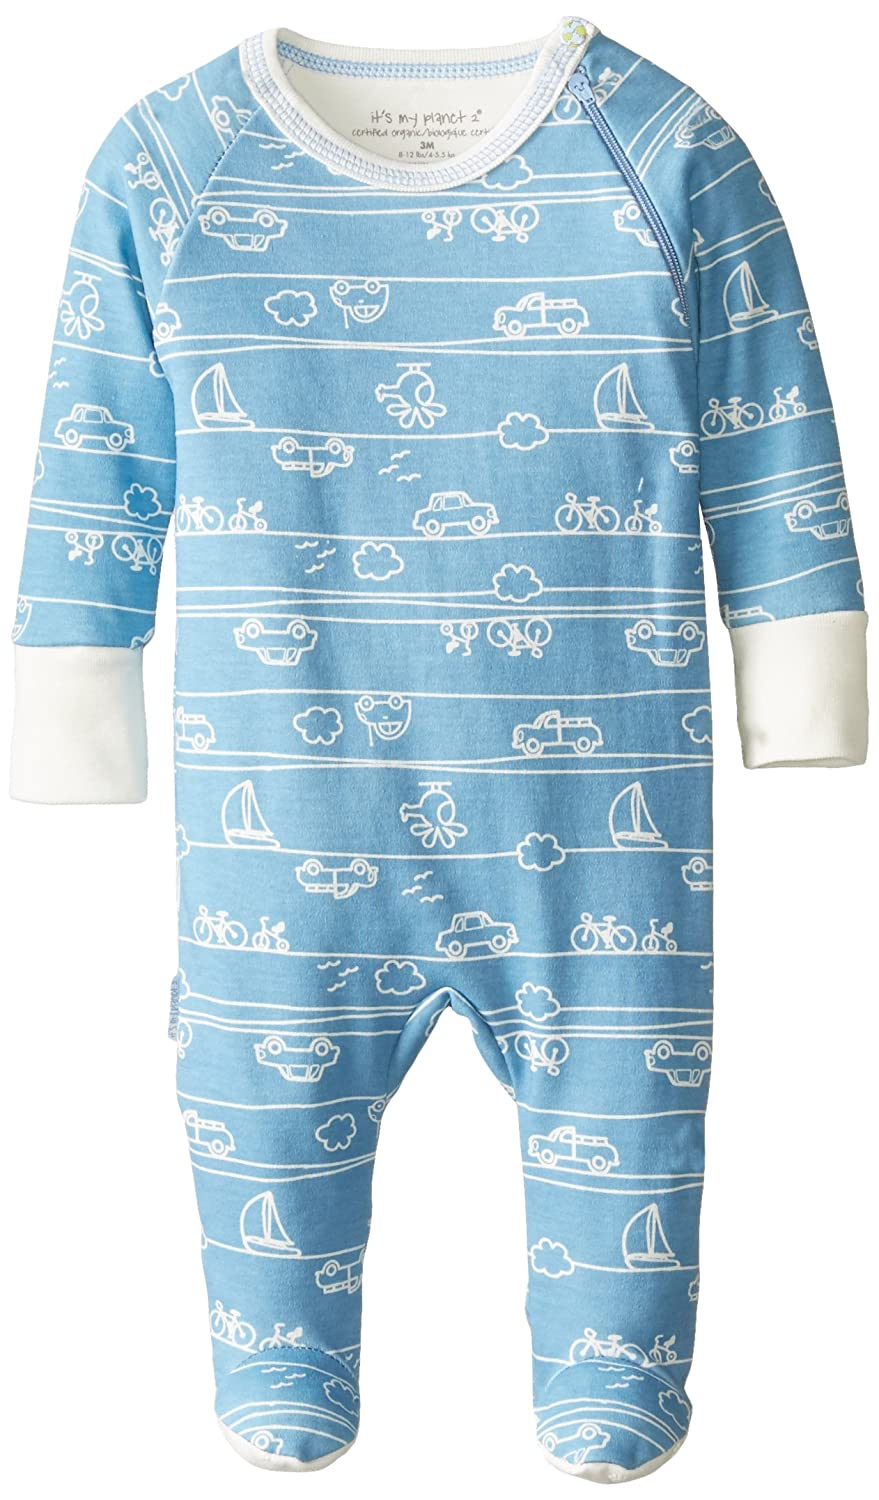 Kushies Baby It's My Planet 2 Side Zip Sleeper, Blue Print, 3 Months L1449-42